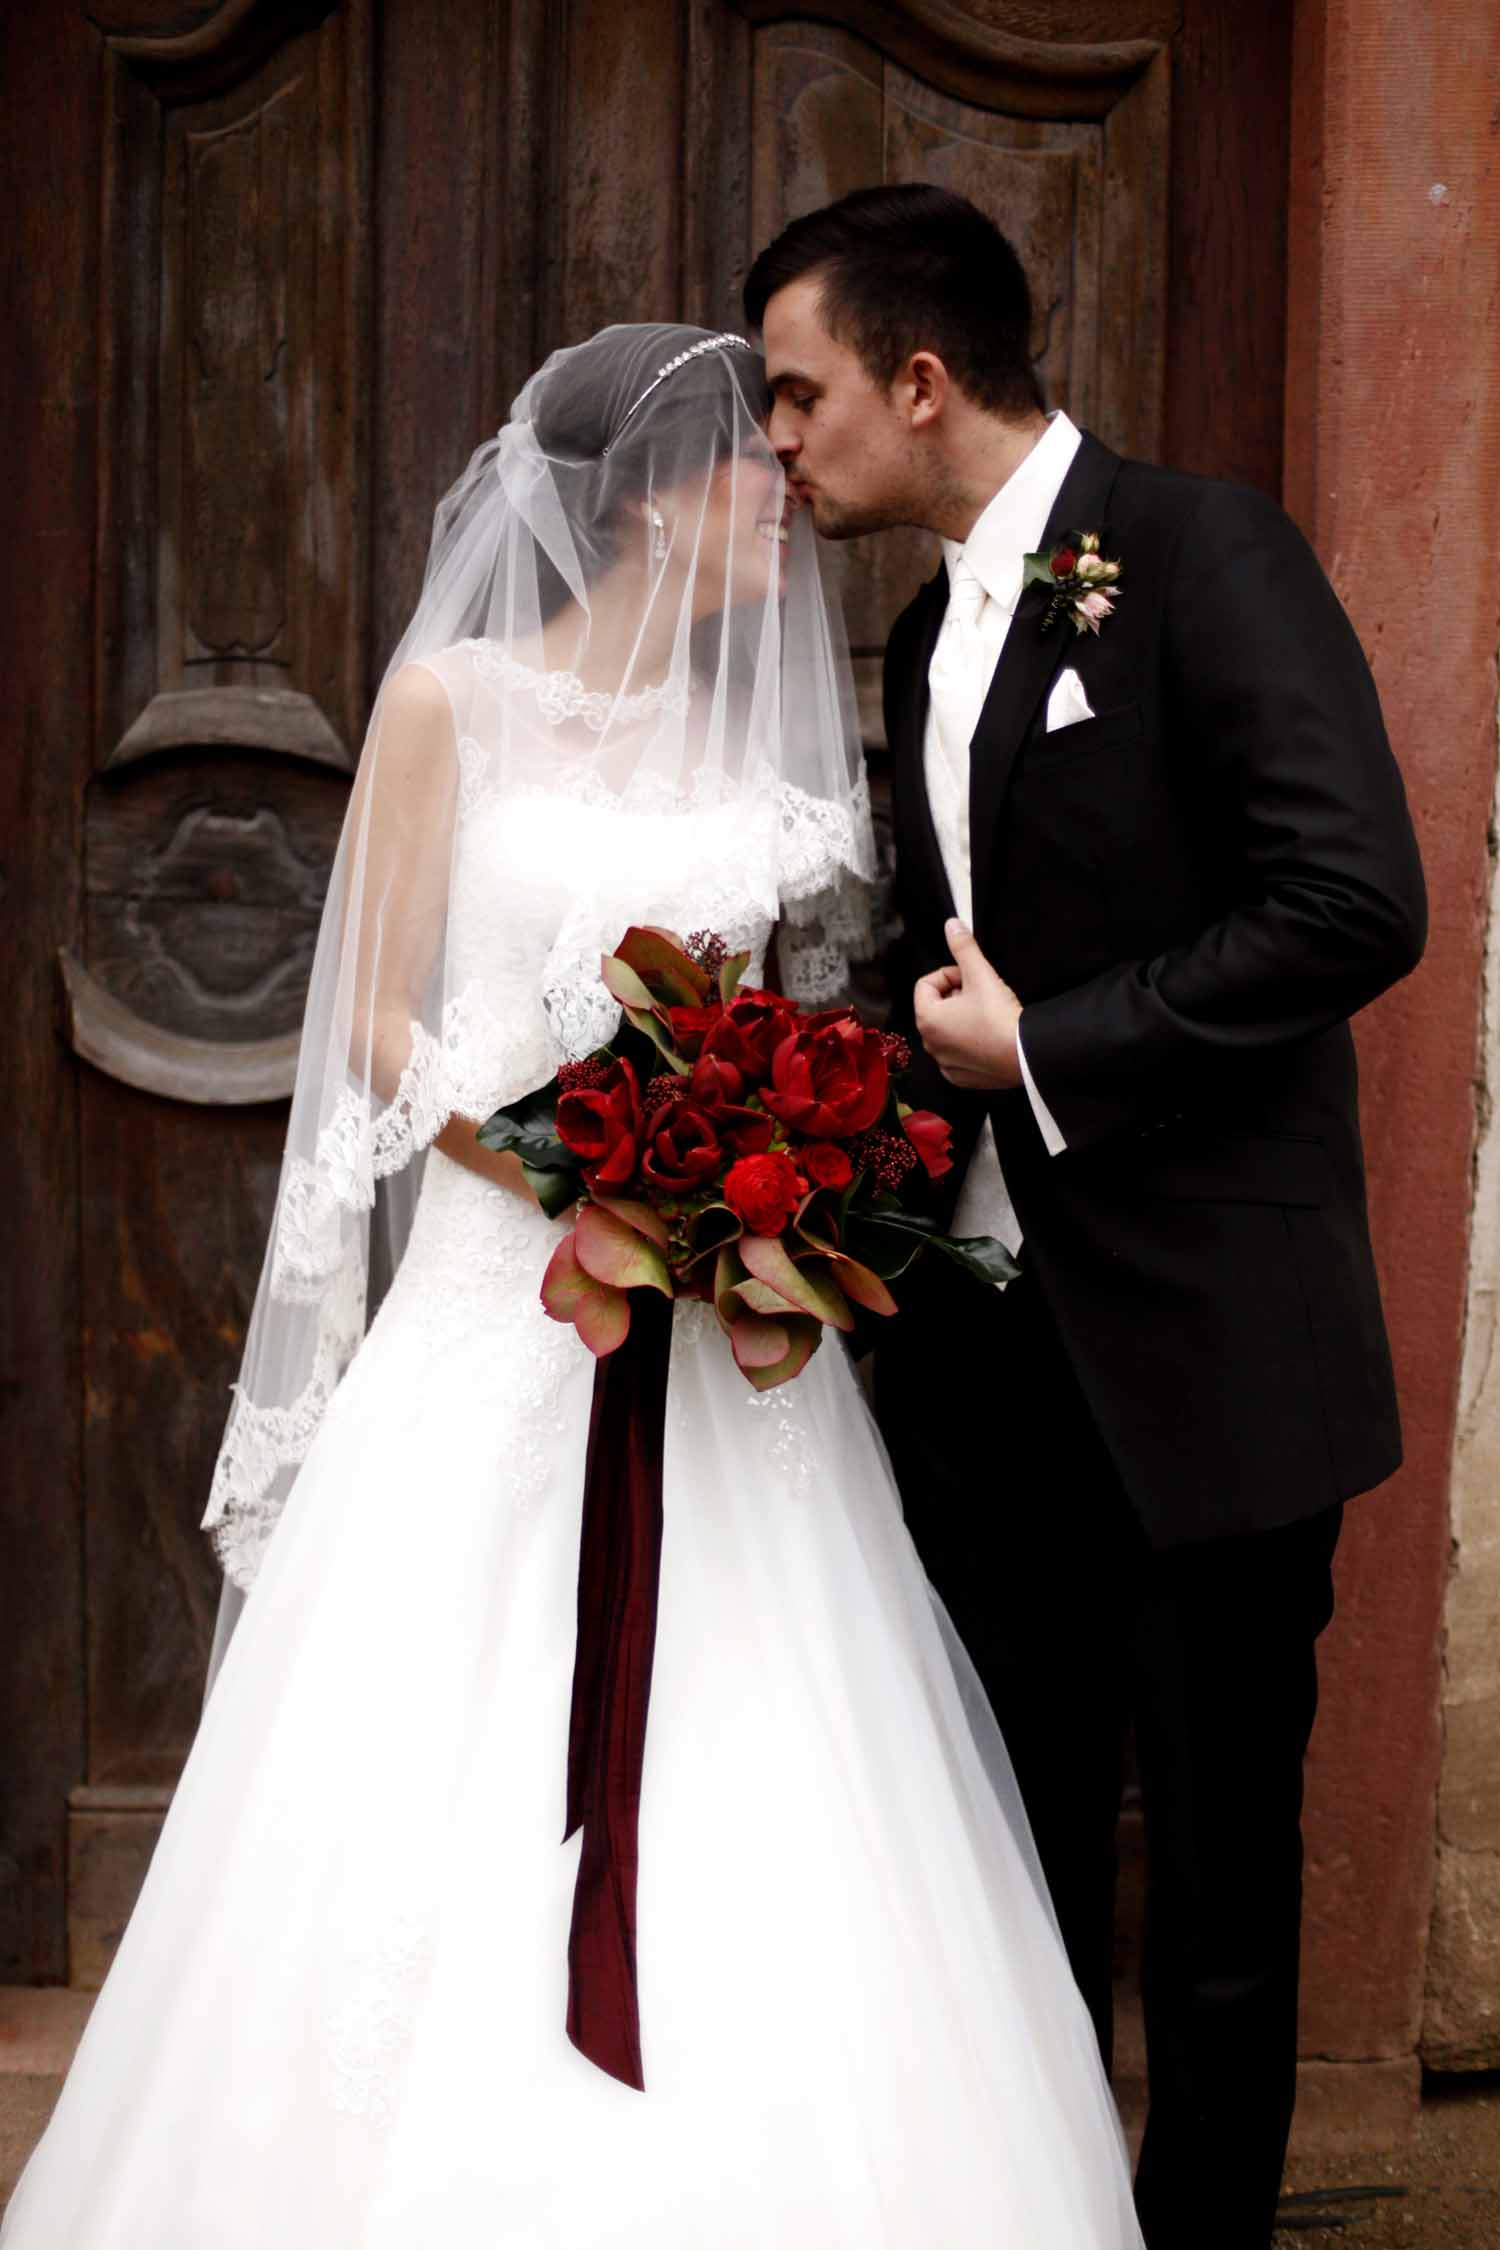 bride with red amaryllis bridal bouquet for Wedding Style Shoot in Kloster Eberbach, Germany, designed by Flora Nova Design, Seattle